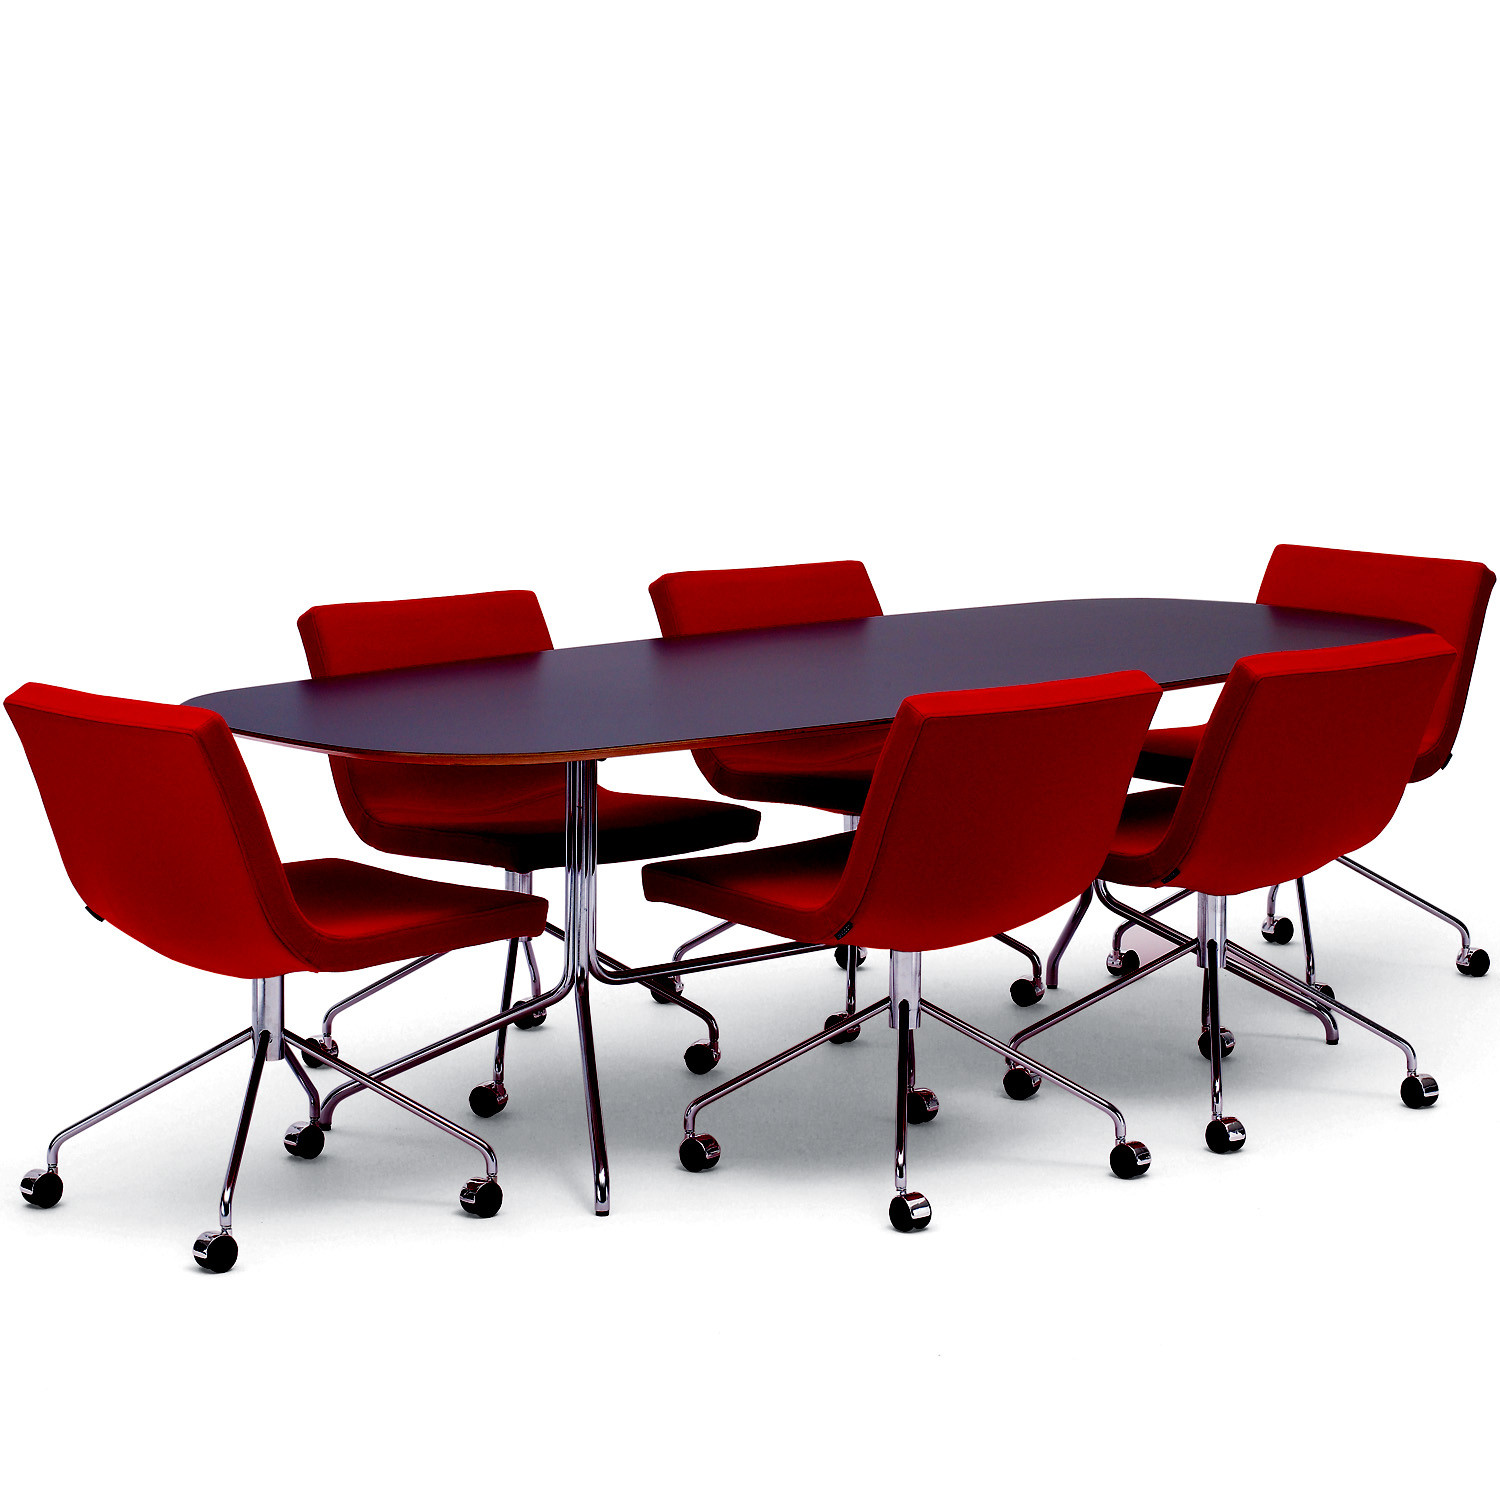 Bond Conference Table by Offecct